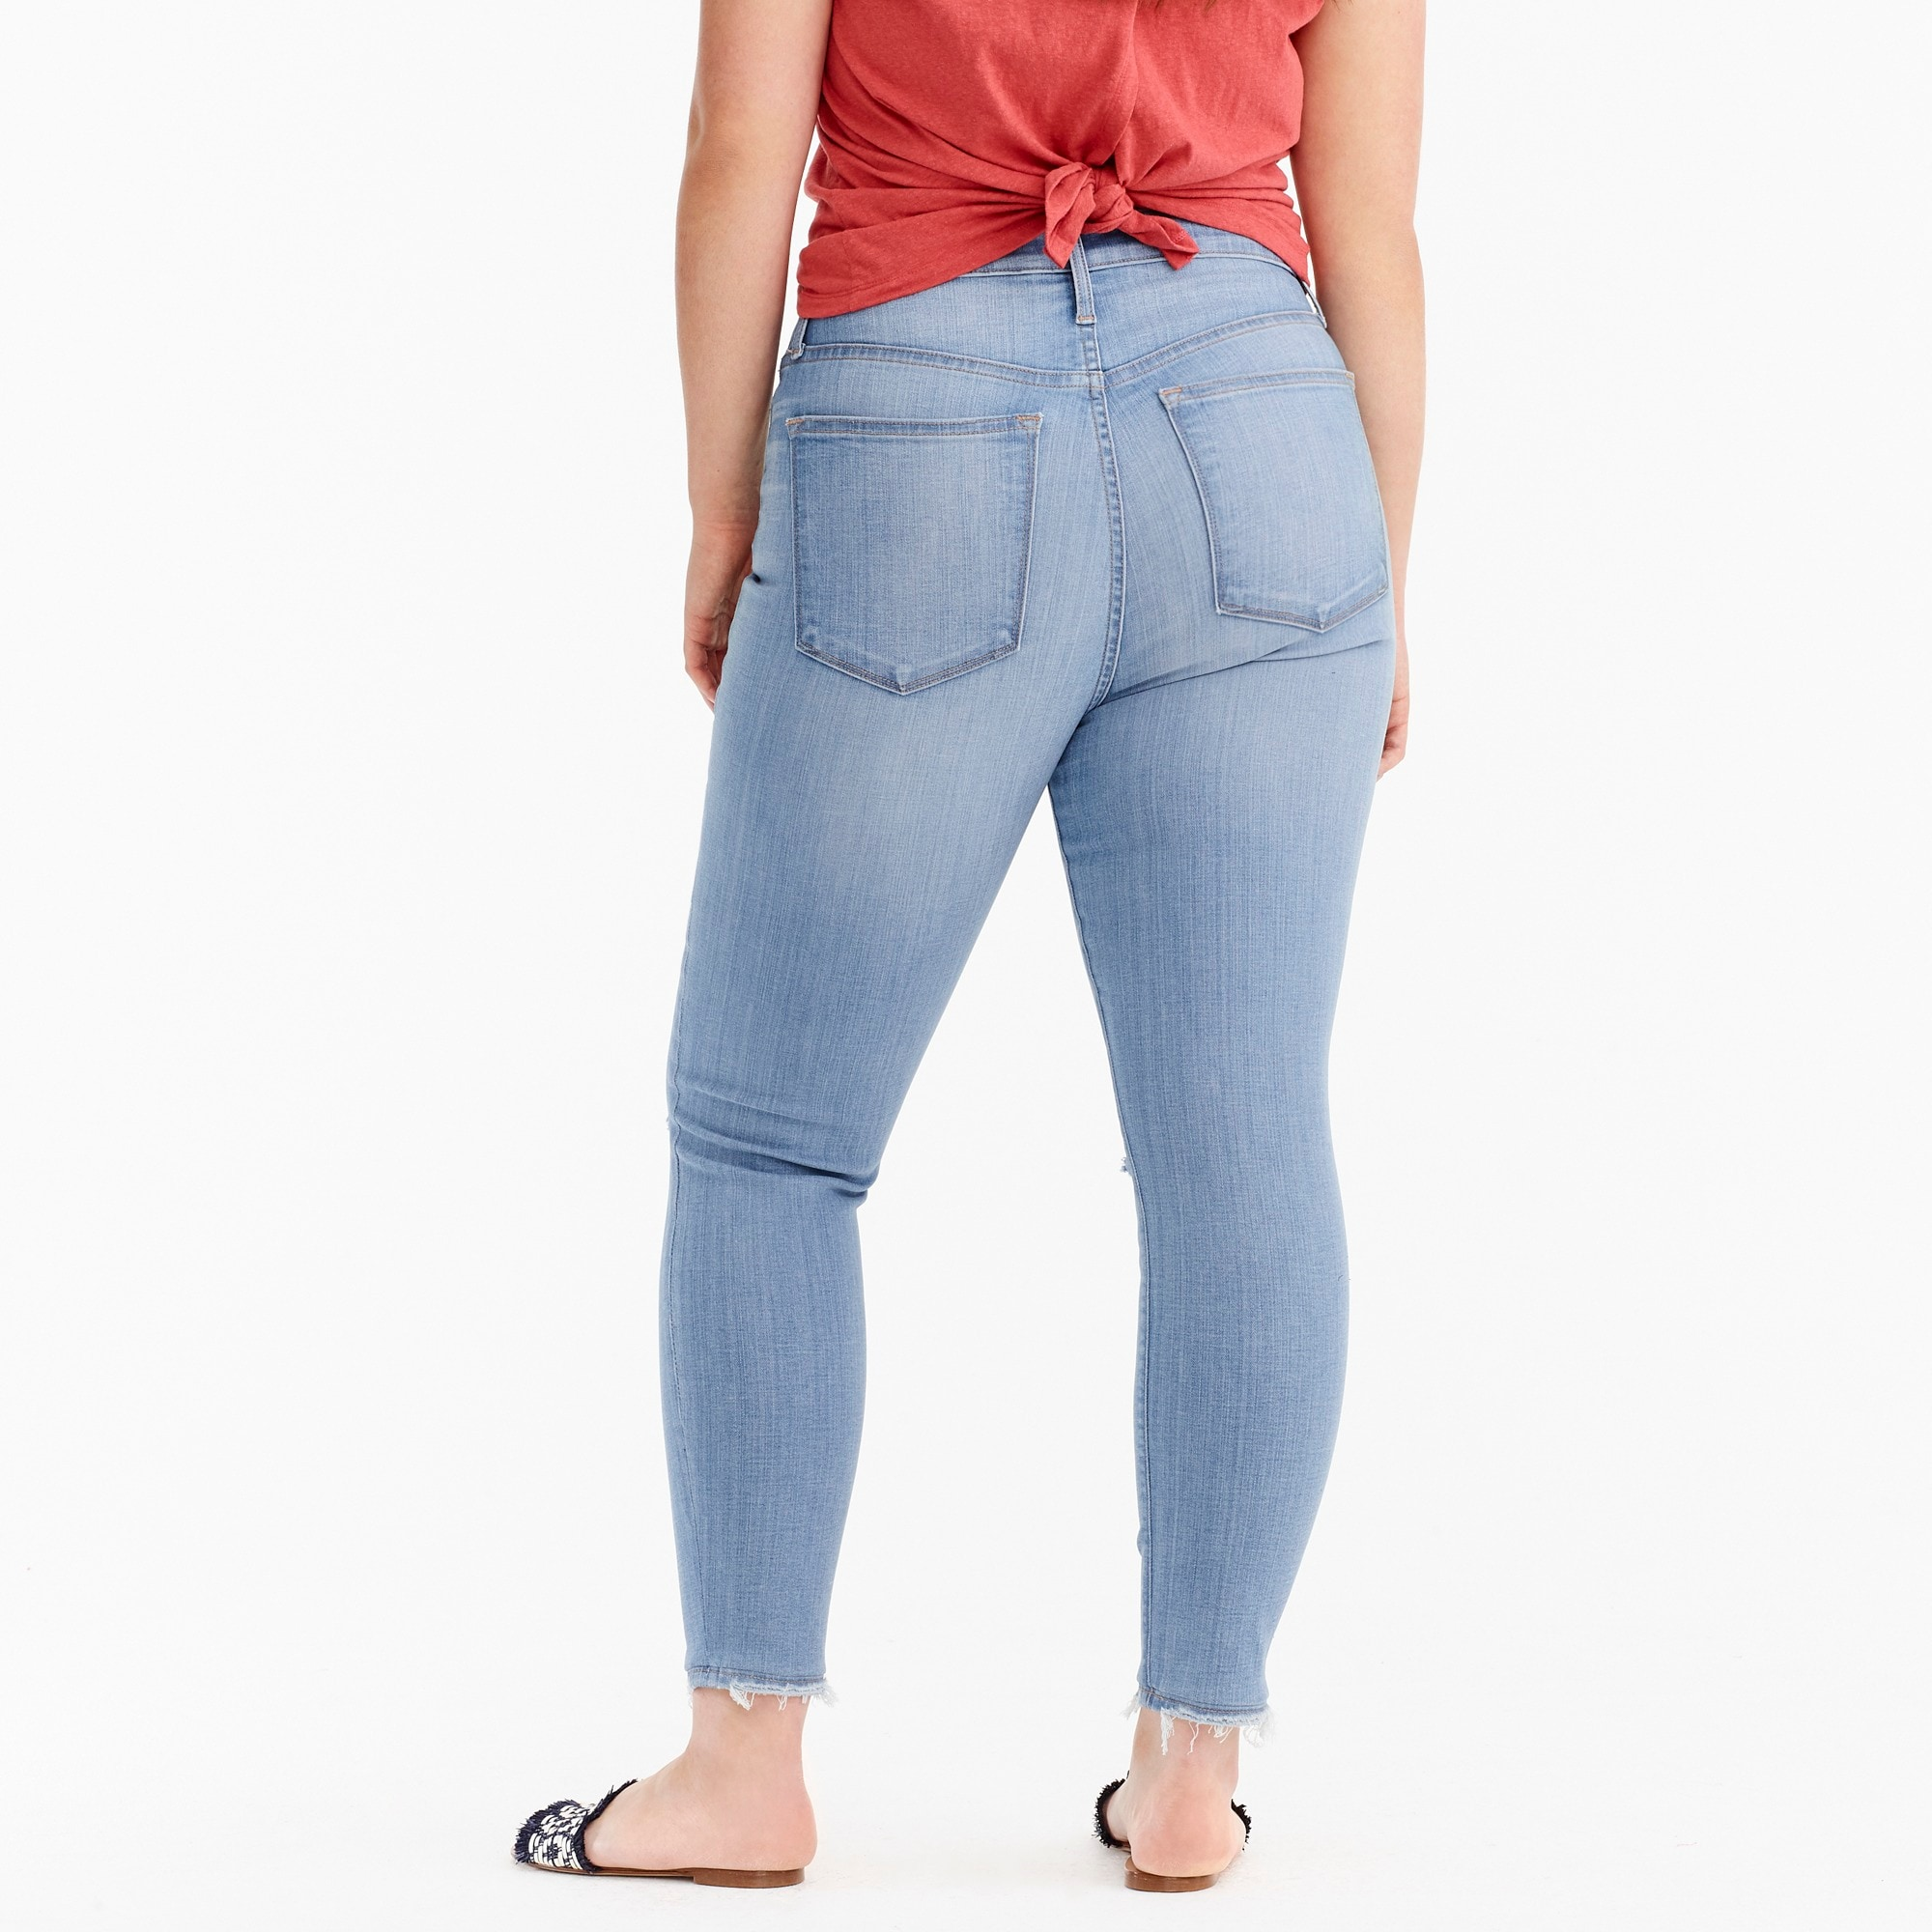 Image 3 for Petite curvy toothpick jean in medium blue